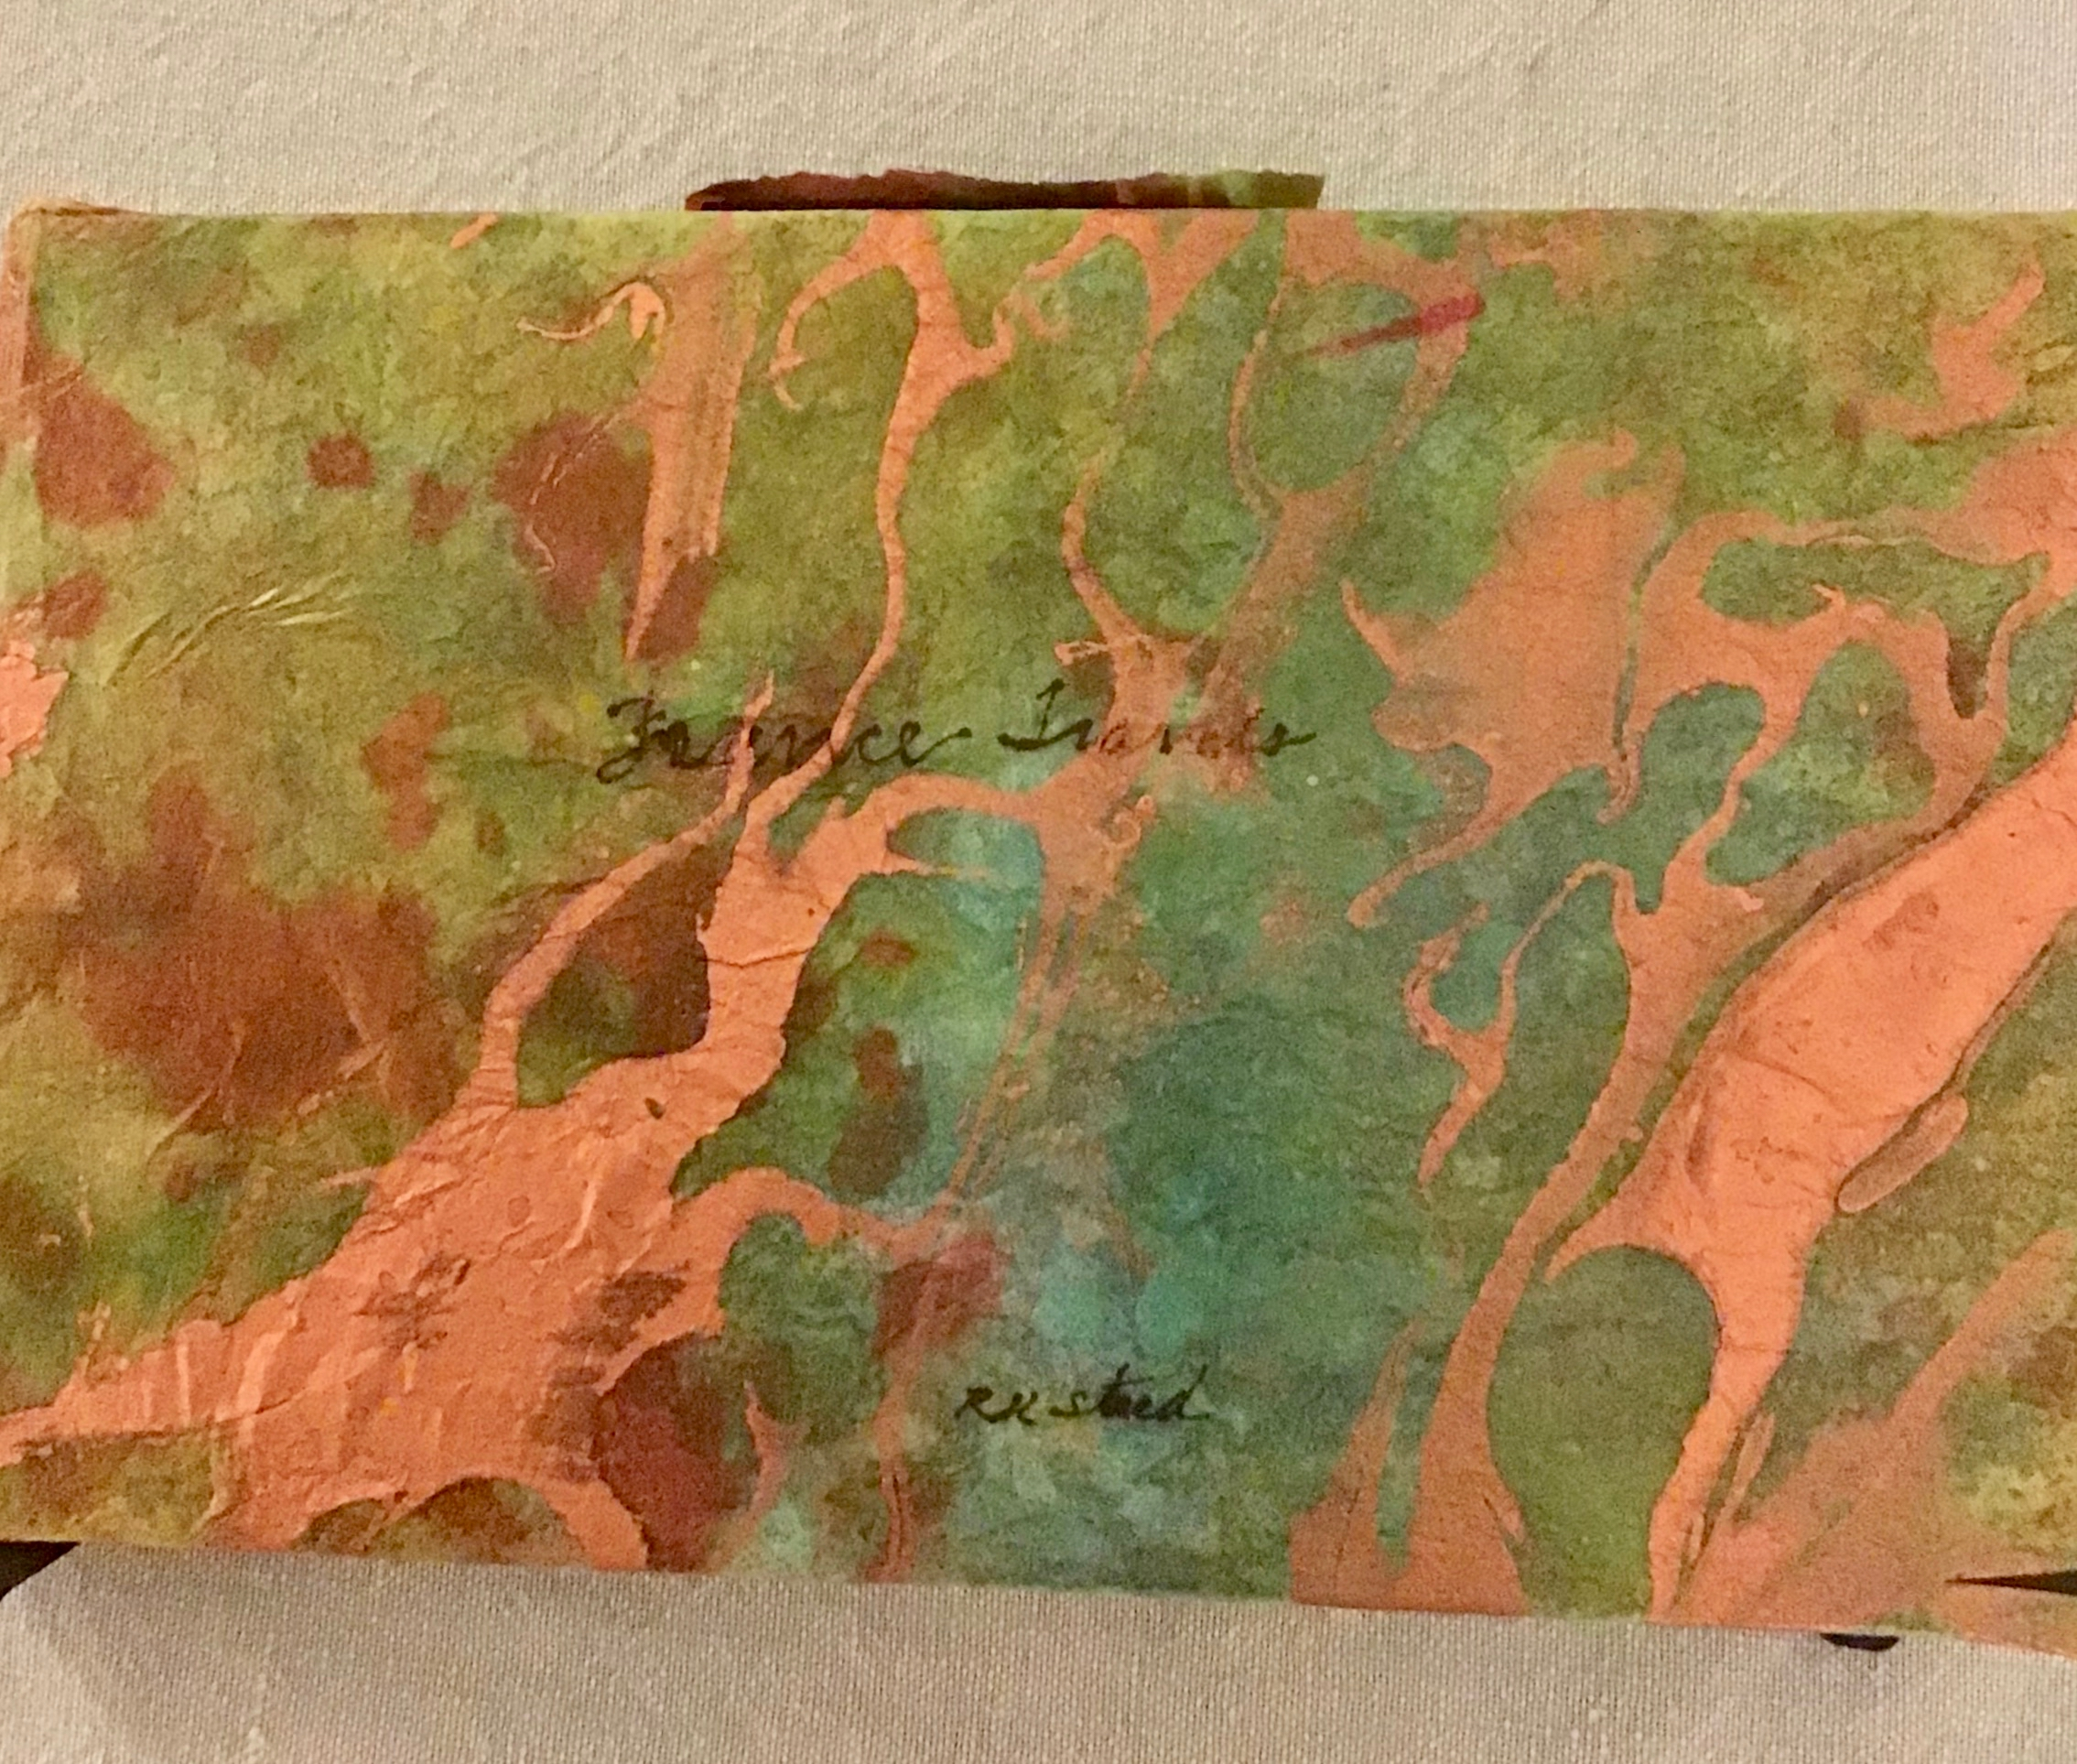 Jerry's Artarama has some beautiful art papers for decoupage. Though the ink doesn't write well on the metallic portion of the paper….this one is a work in progress, and may go through some more transitions!